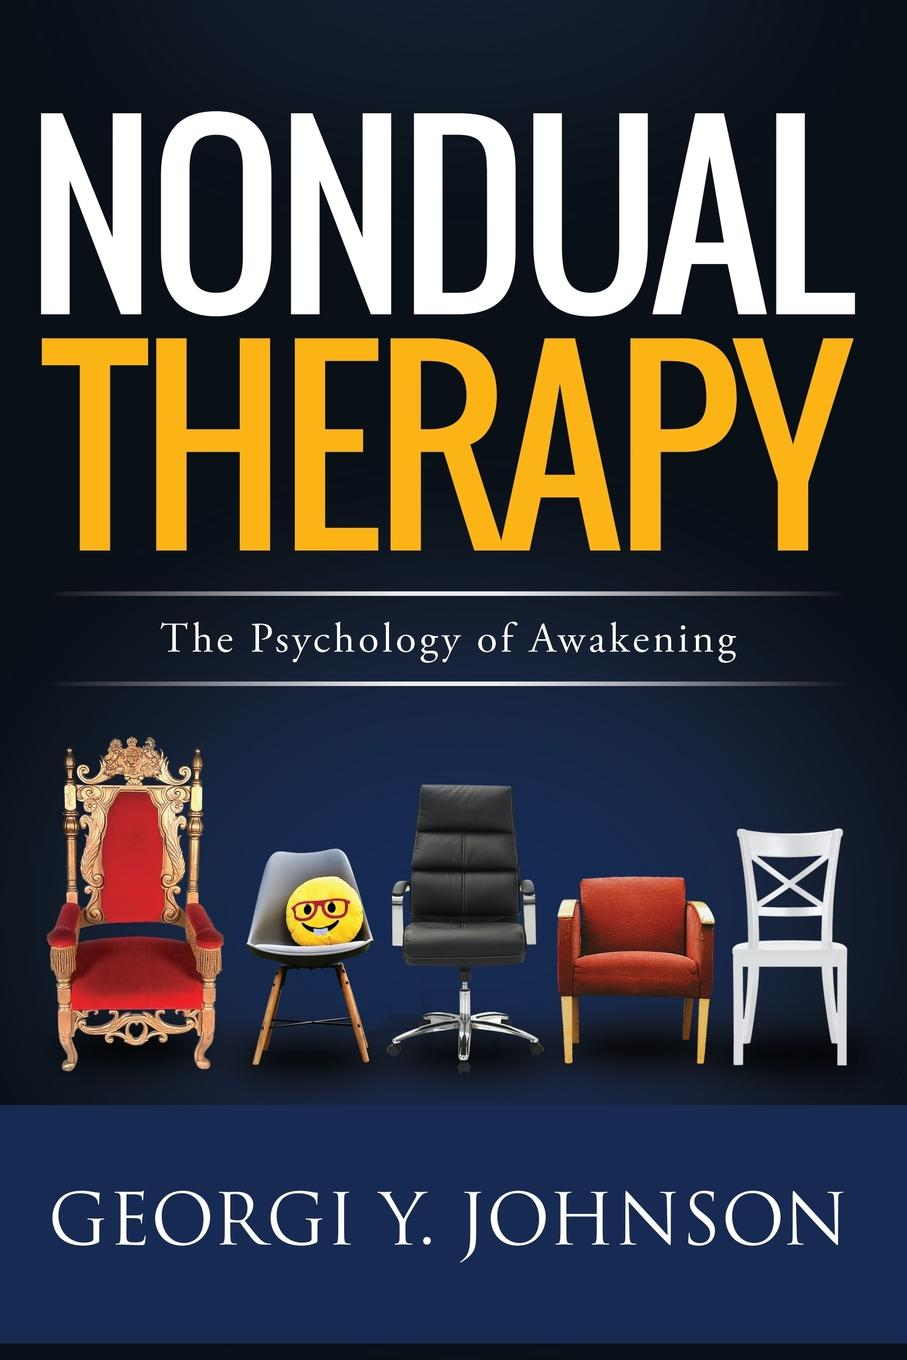 Georgi Y Johnson Nondual Therapy. The Psychology of Awakening george burns w happiness healing enhancement your casebook collection for applying positive psychology in therapy